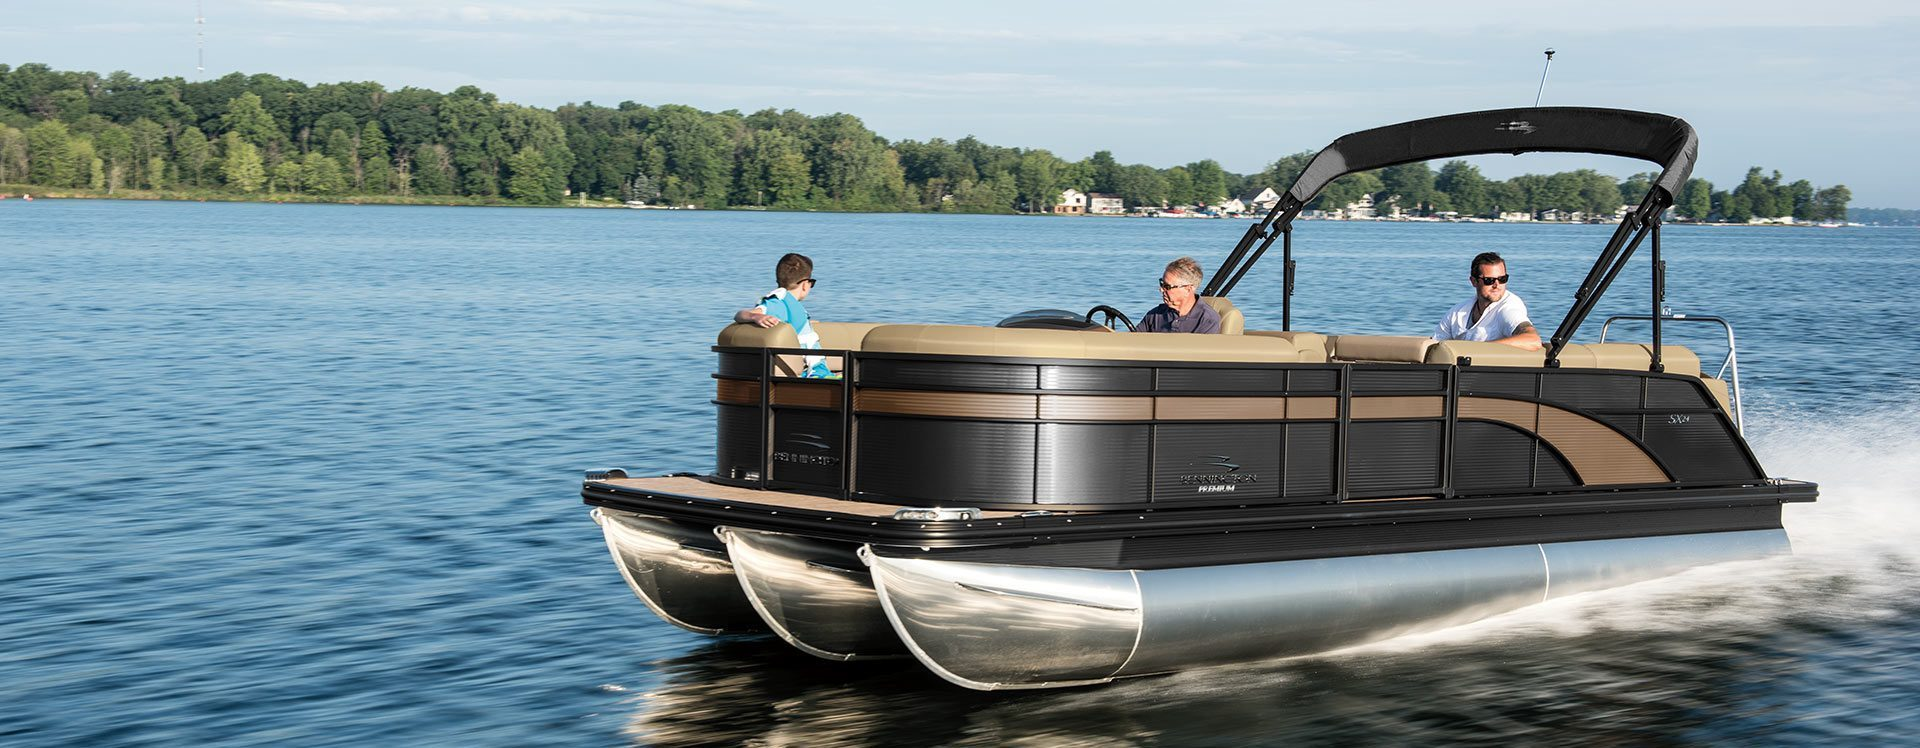 Glen Craft - Serving Boating Enthusiasts Since 1946